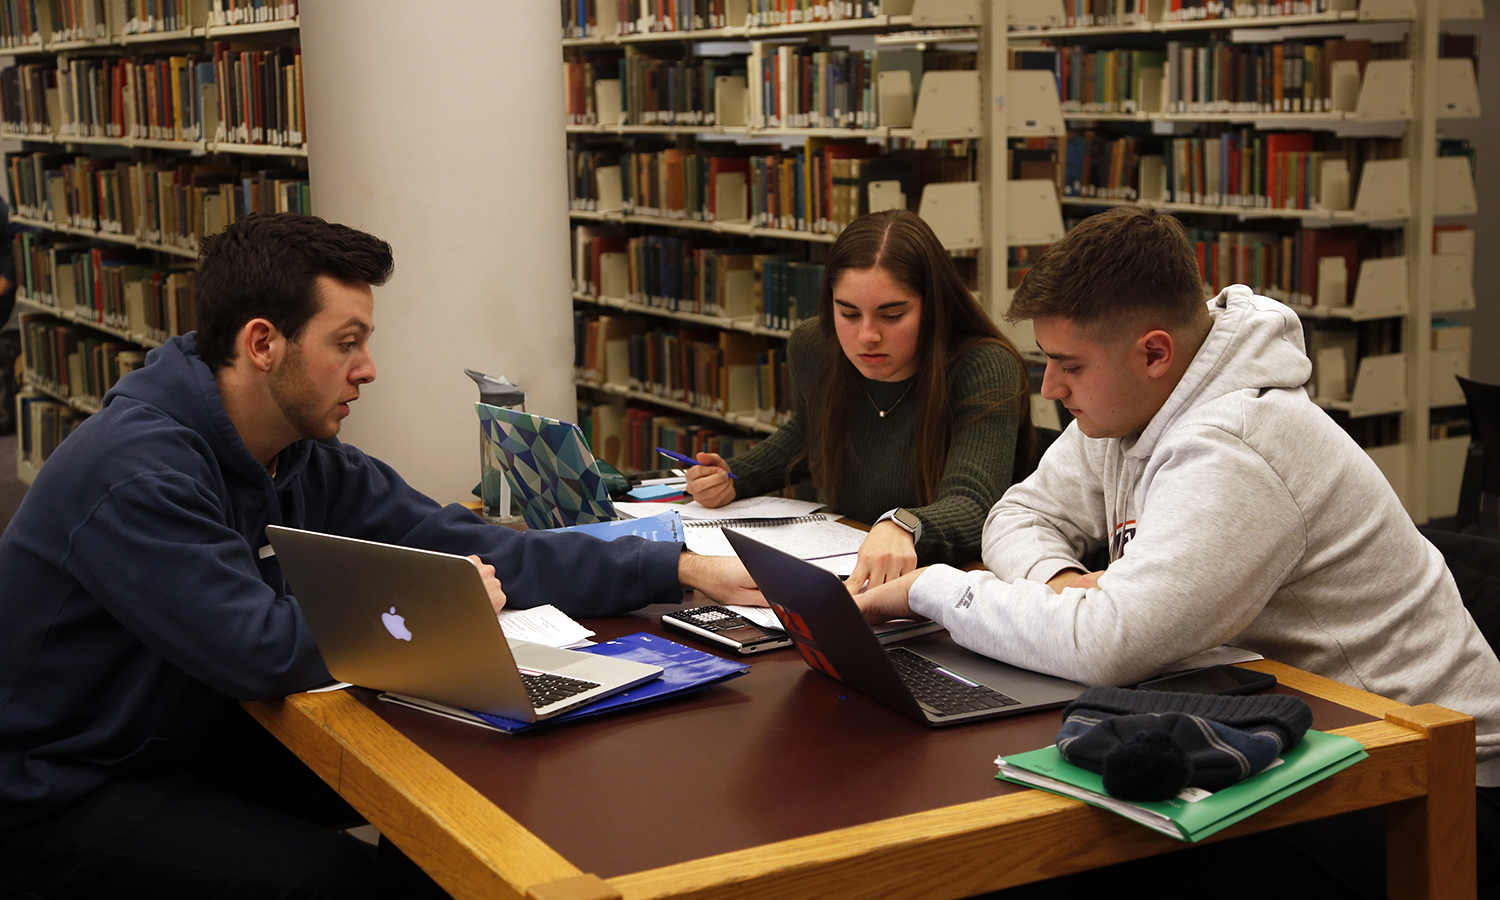 Library Studying1